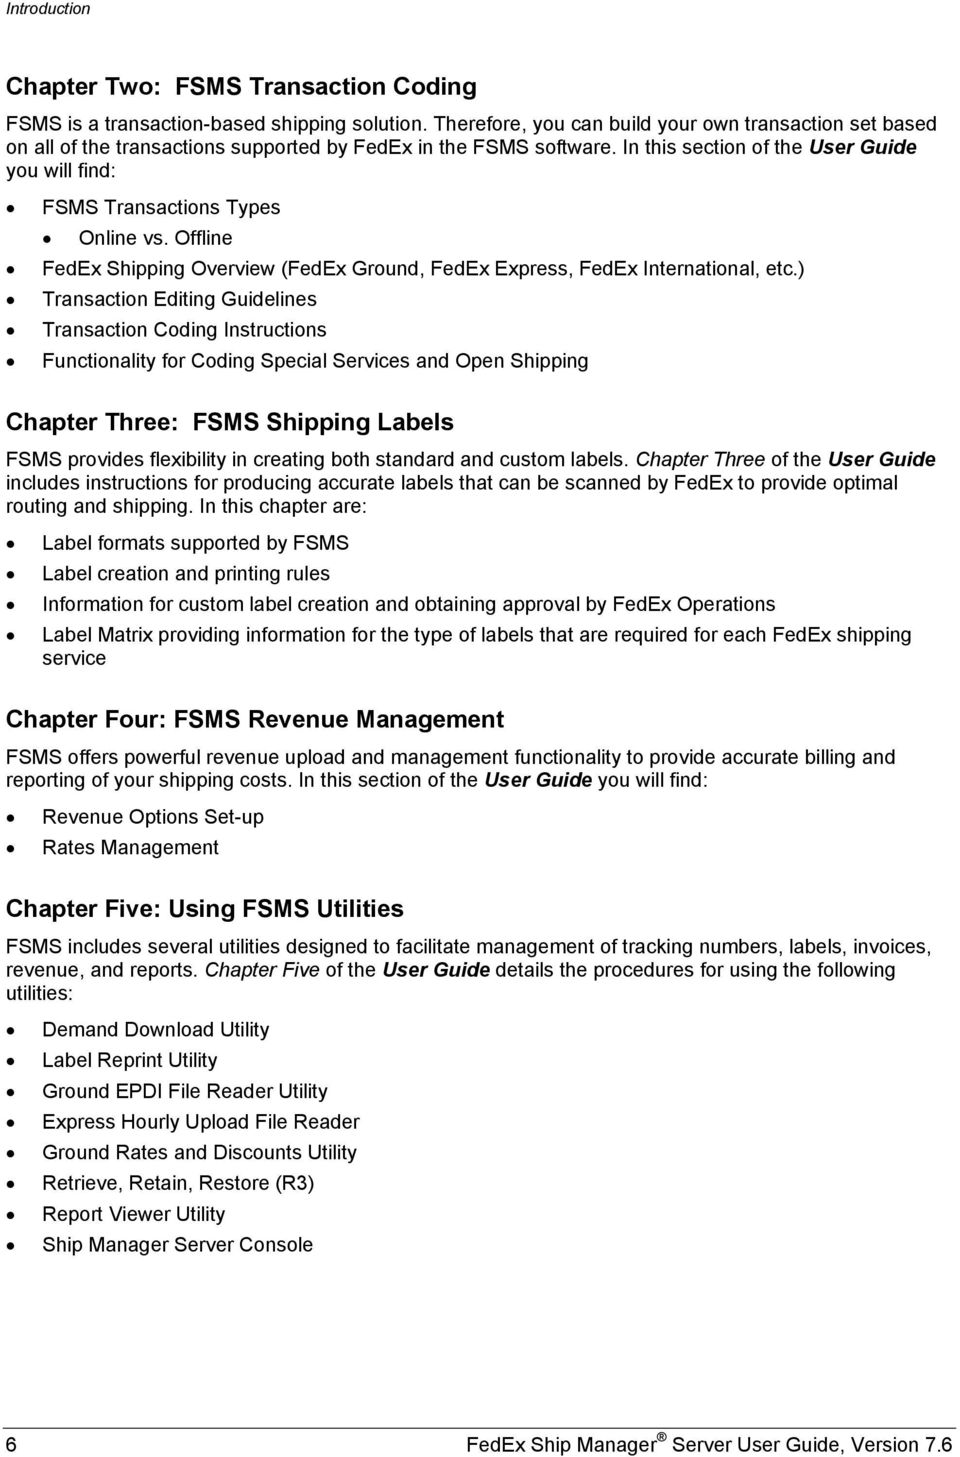 In this section of the User Guide you will find: FSMS Transactions Types Online vs. Offline FedEx Shipping Overview (FedEx Ground, FedEx Express, FedEx International, etc.